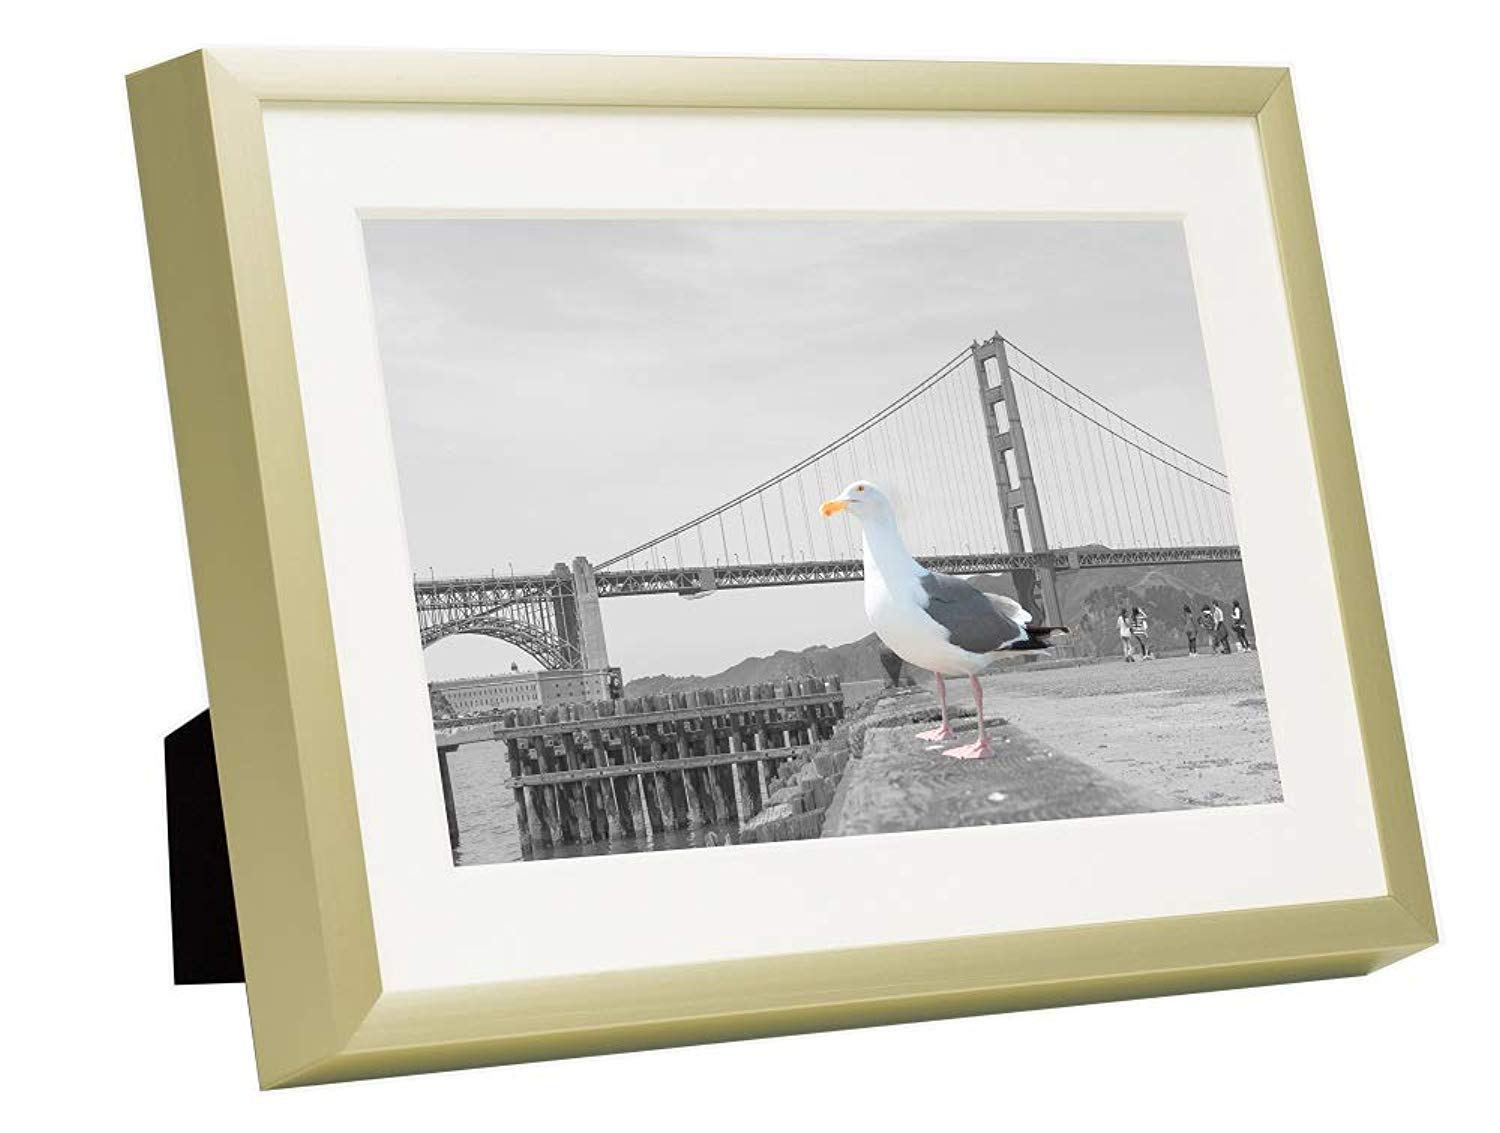 Frametory Gold Ivory Color Mat for 4x6 Picture 5x7 Gold Aluminum Frame Wall//Tabletop Display Easel Stand